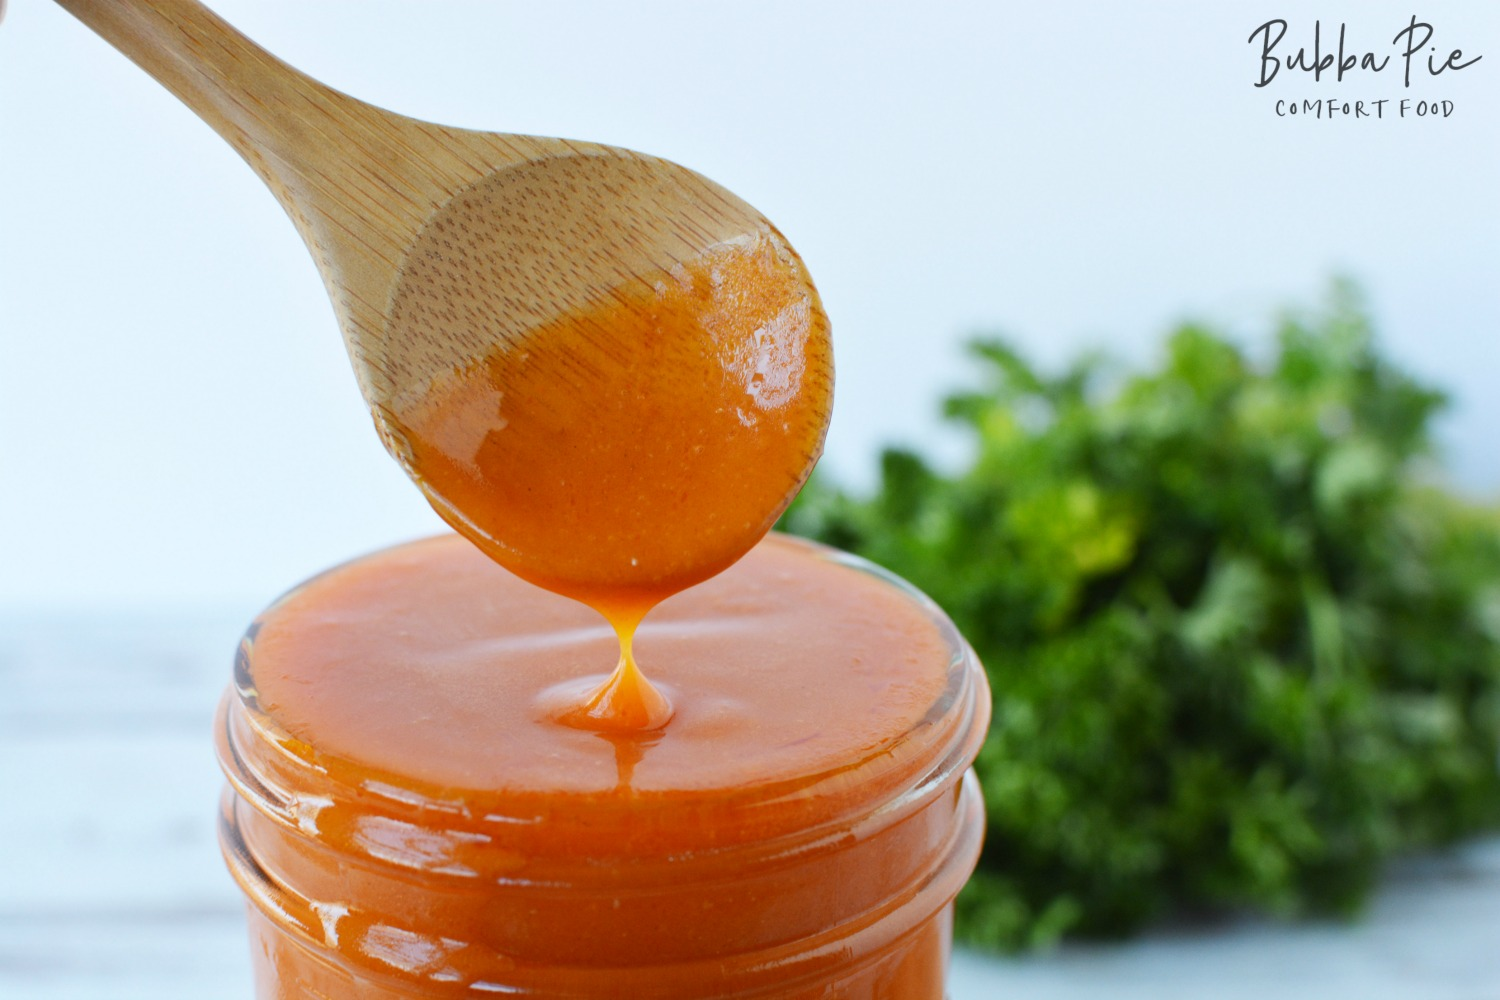 This homemade buffalo sauce recipe is quick, easy and spicy!